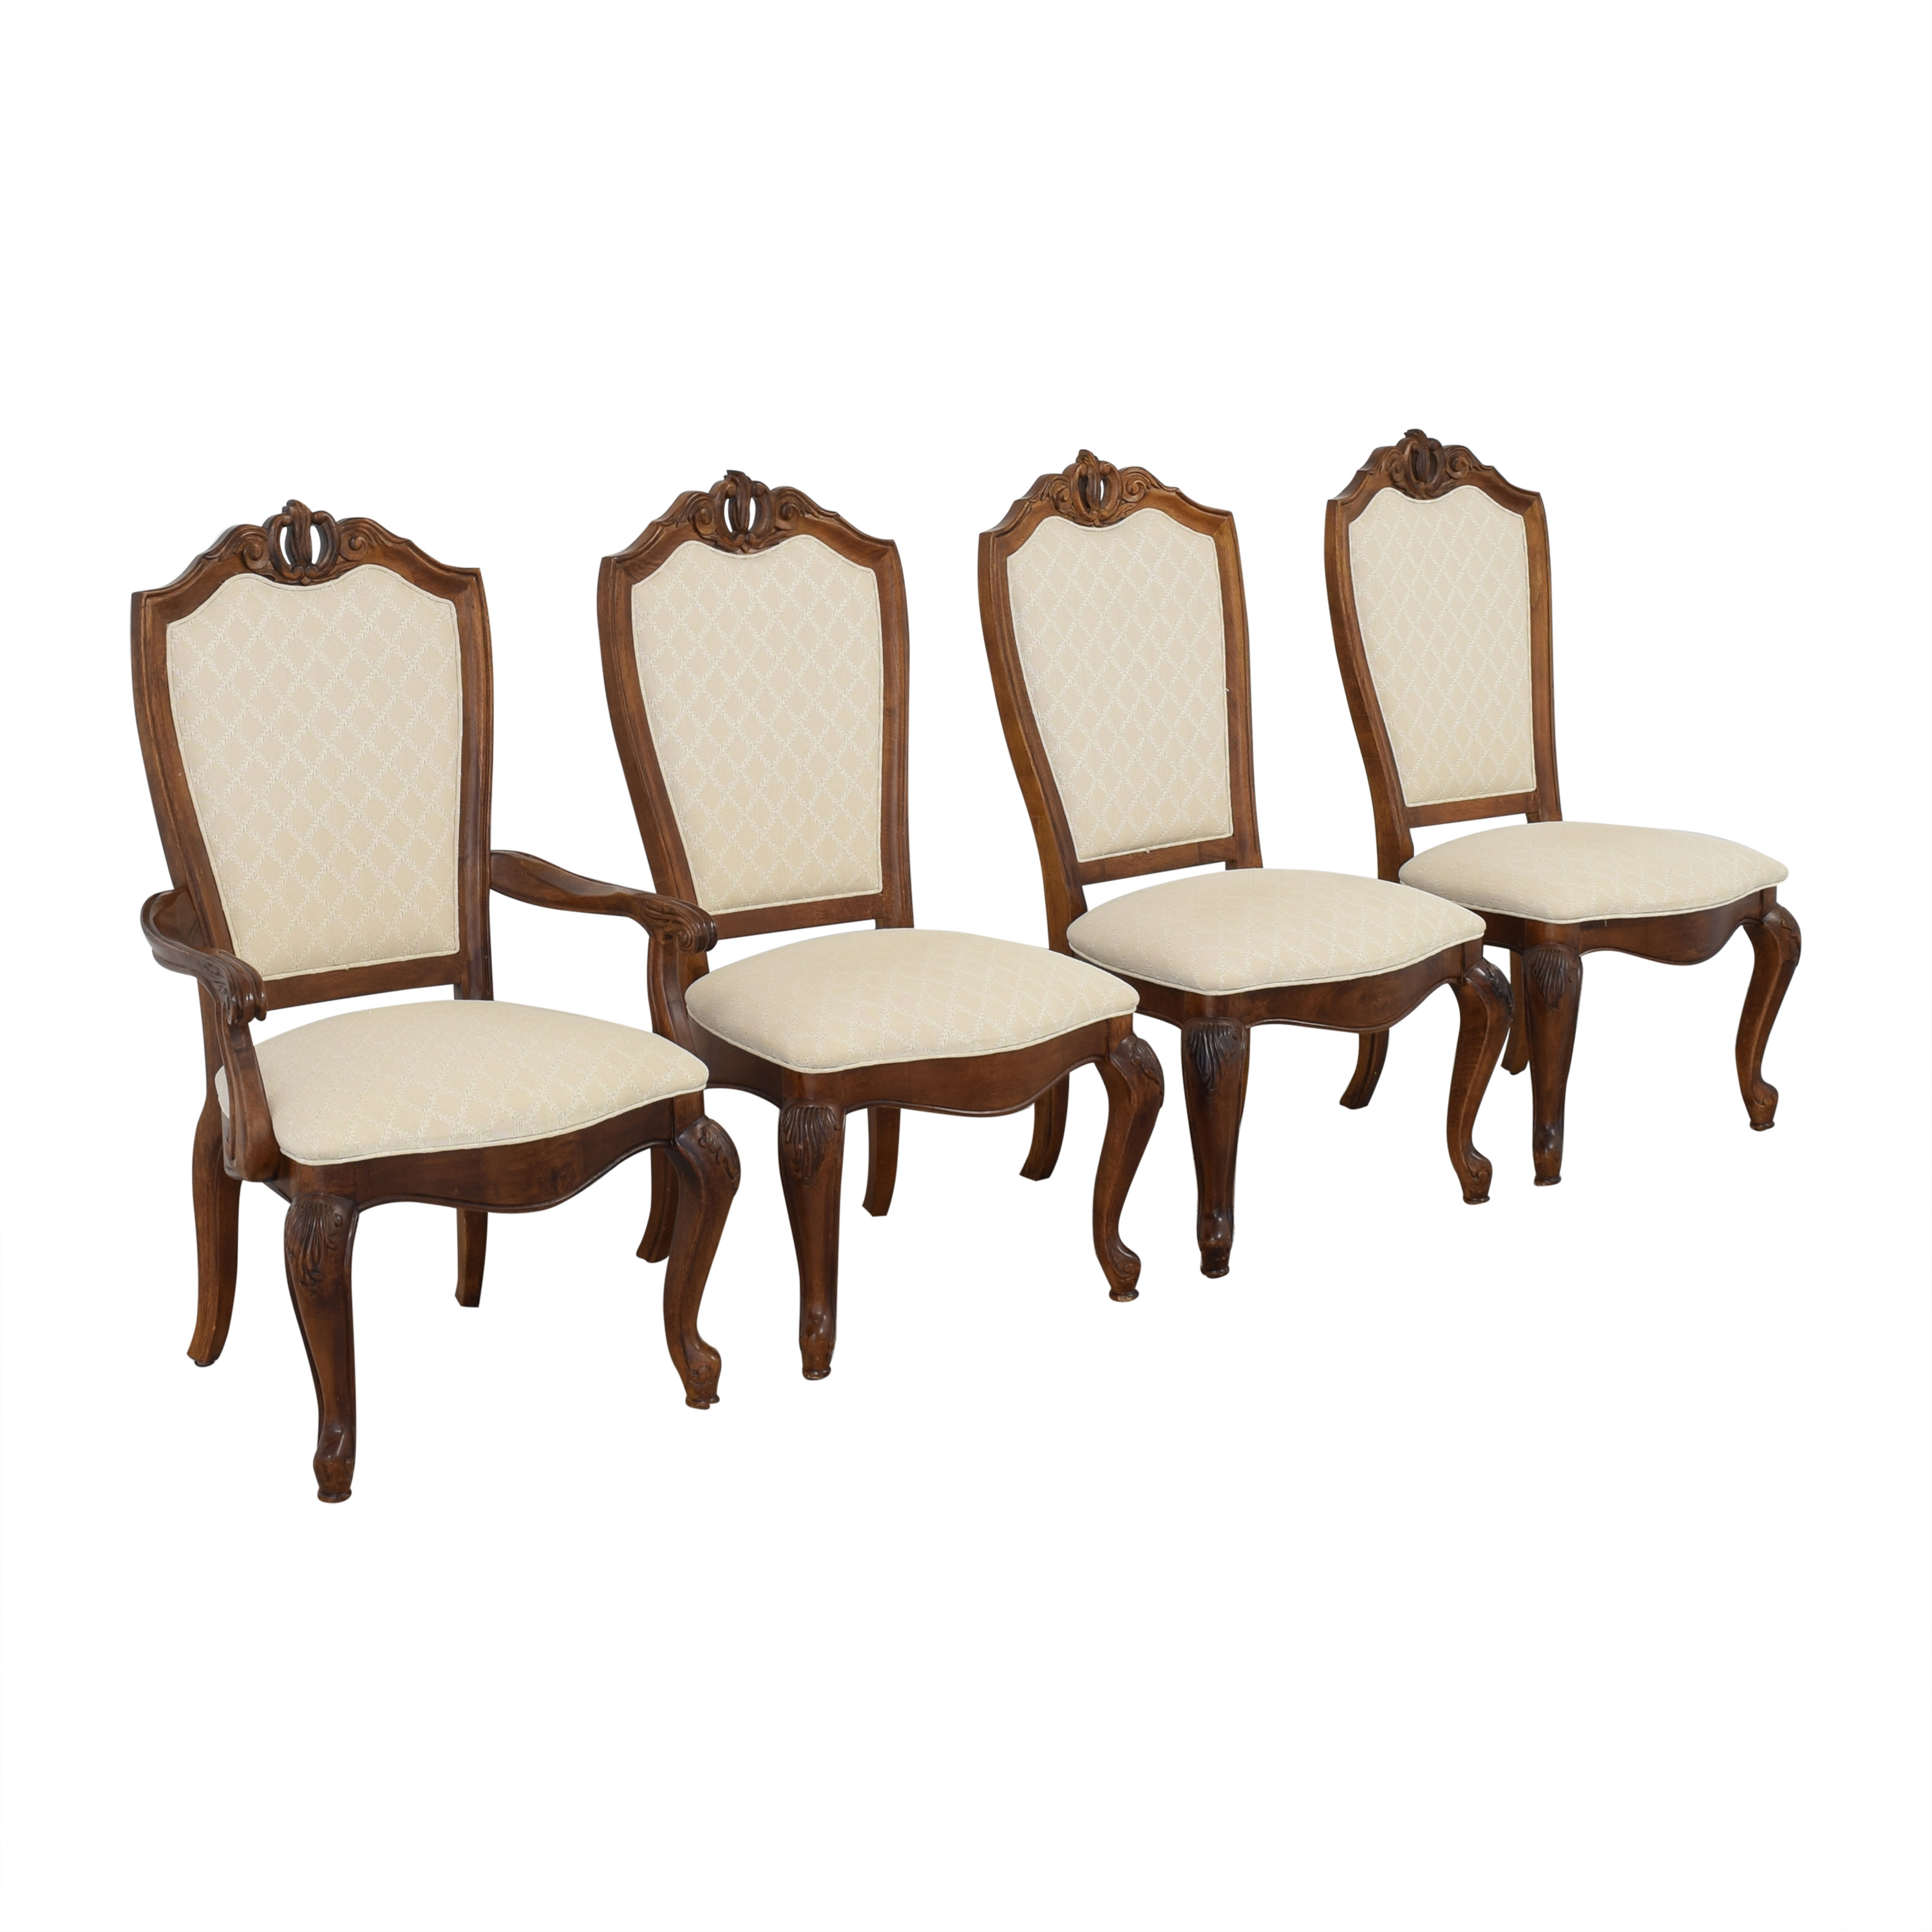 American Drew Bob Mackie for American Drew Dining Chairs used